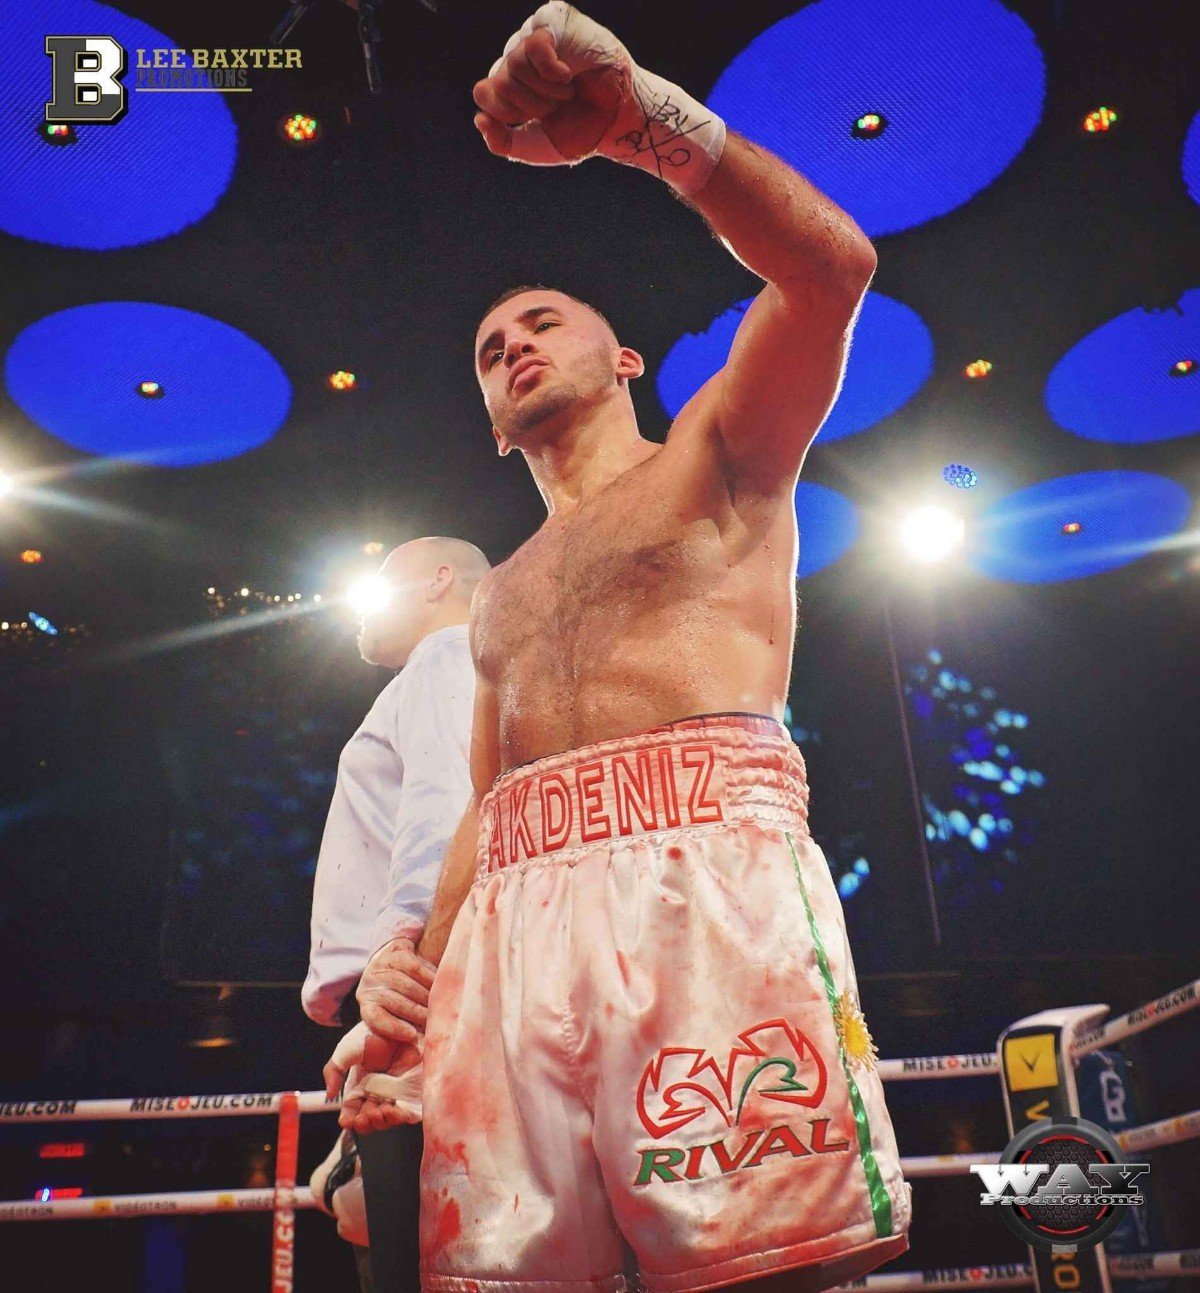 - Top lightweight prospect Mazlum Akdeniz added to his undefeated record on Saturday night, scoring an eight round unanimous decision over Jose Guillermo Garcia at the Montreal Casino in Montreal, QC.